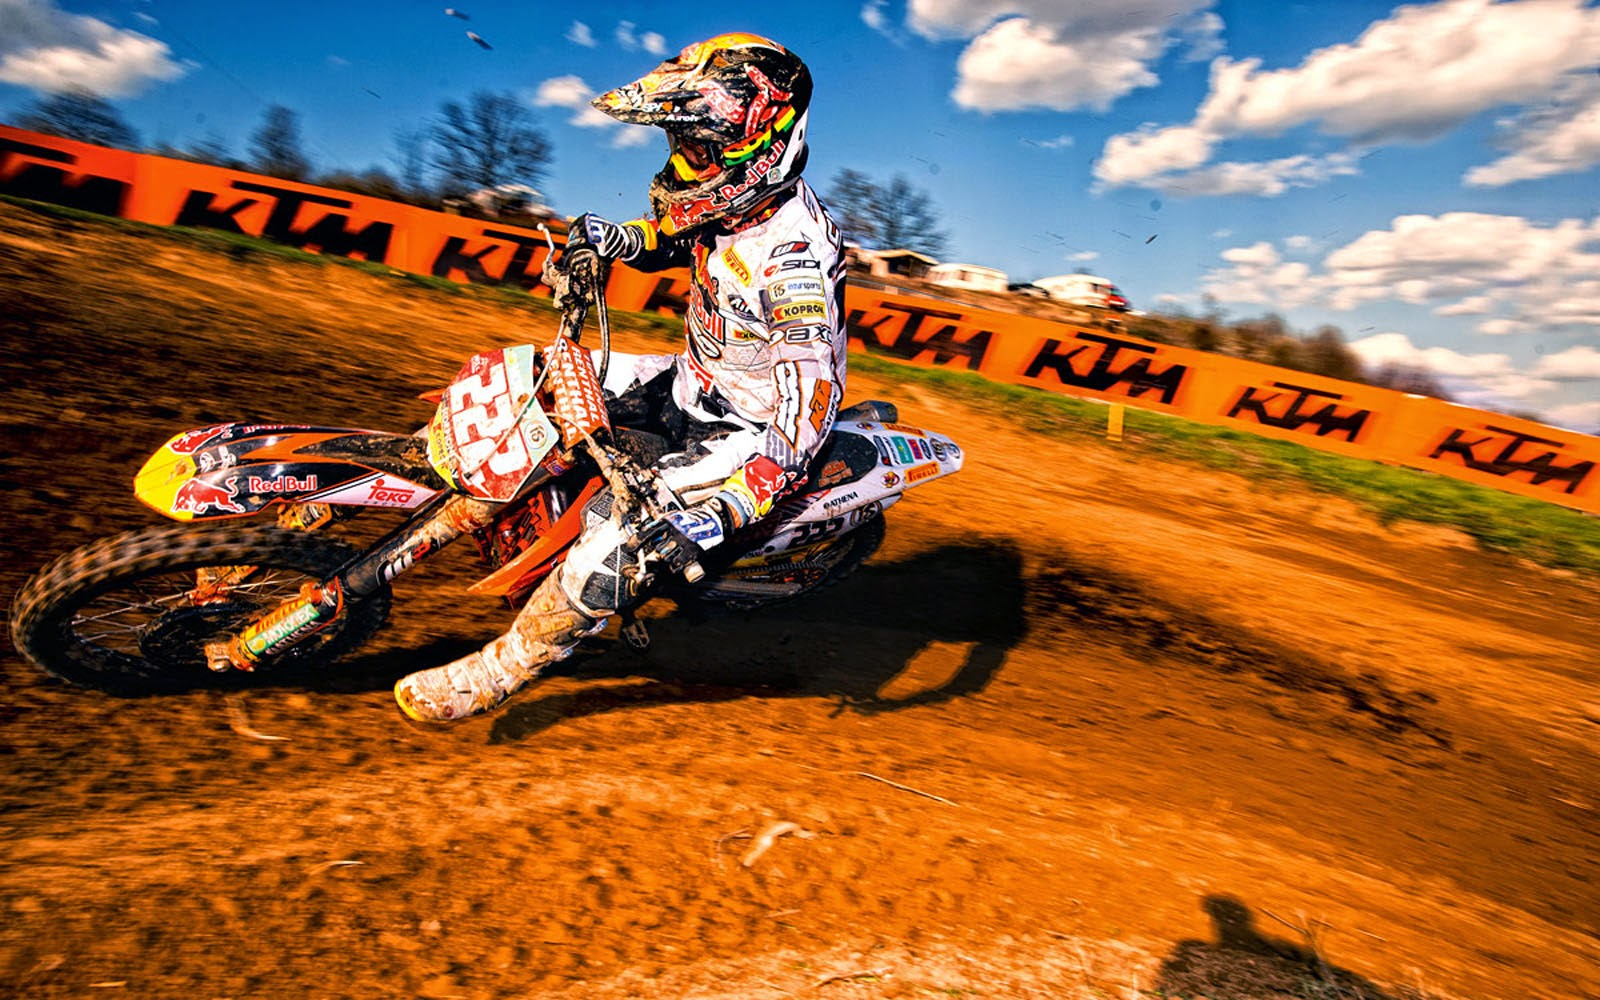 Wallpapers: KTM 350 SX-F Wallpapers